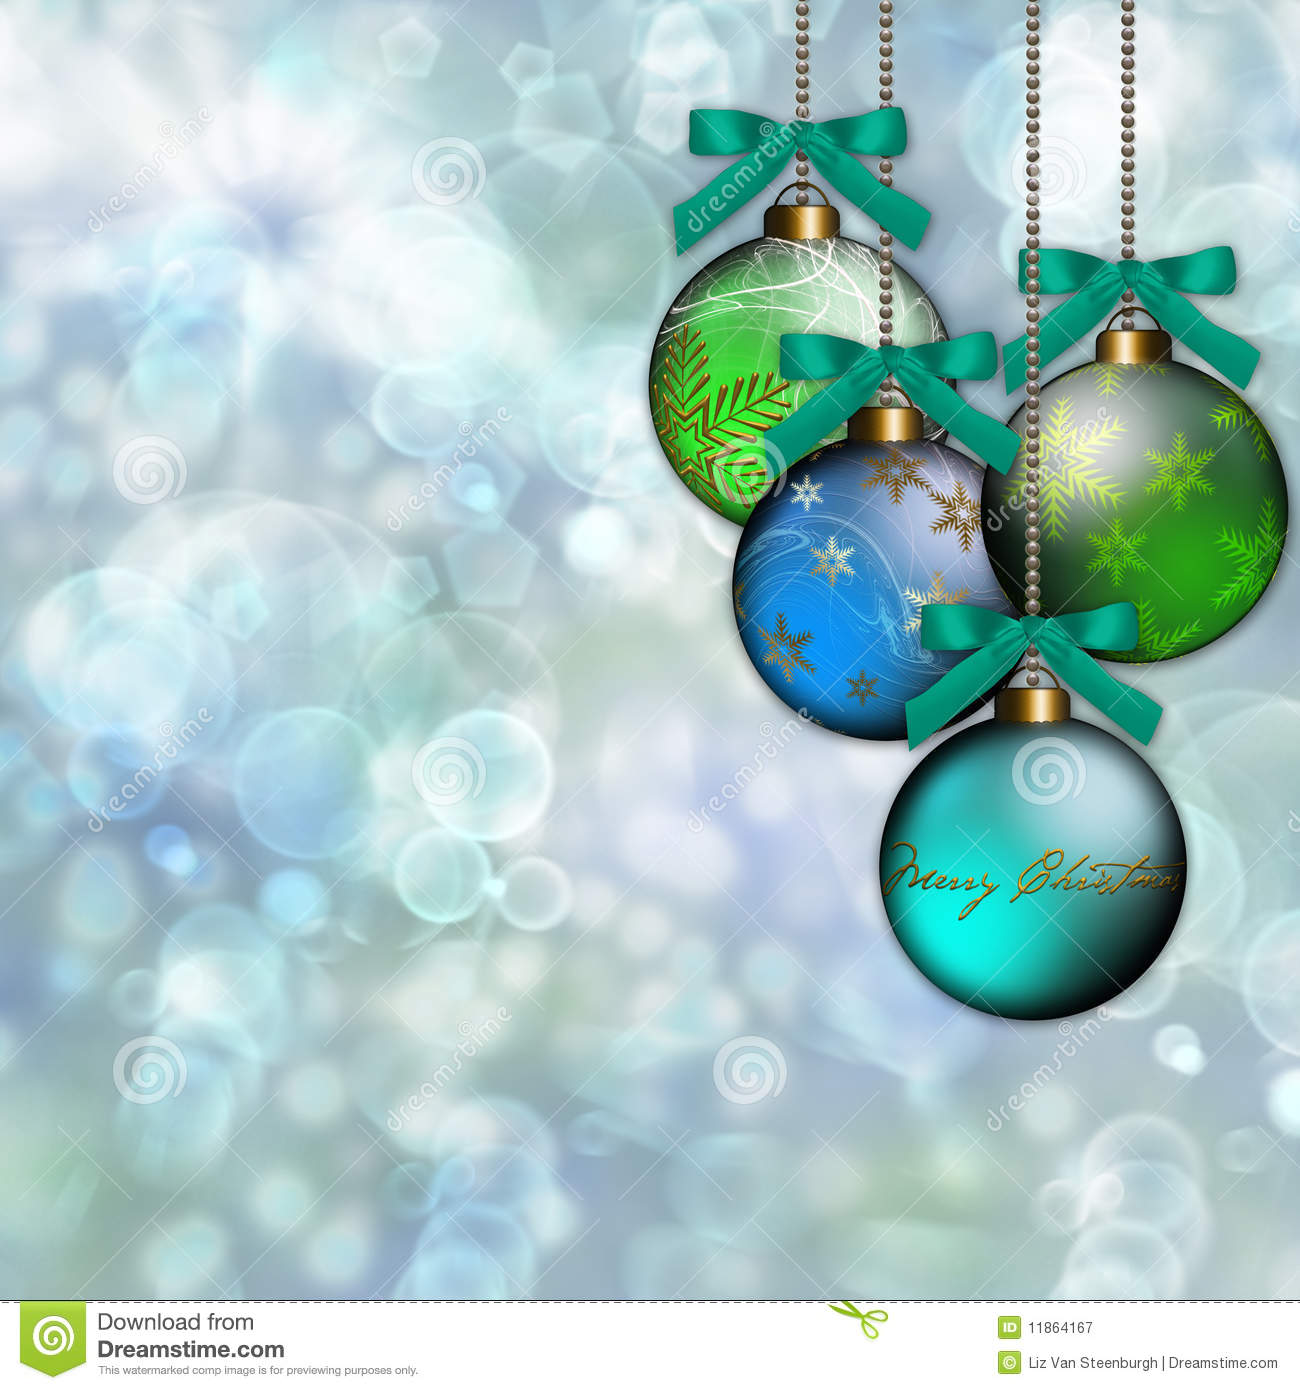 Blue green christmas tree decorations - Blue Green Ornament Christmas Background Royalty Free Stock Photography